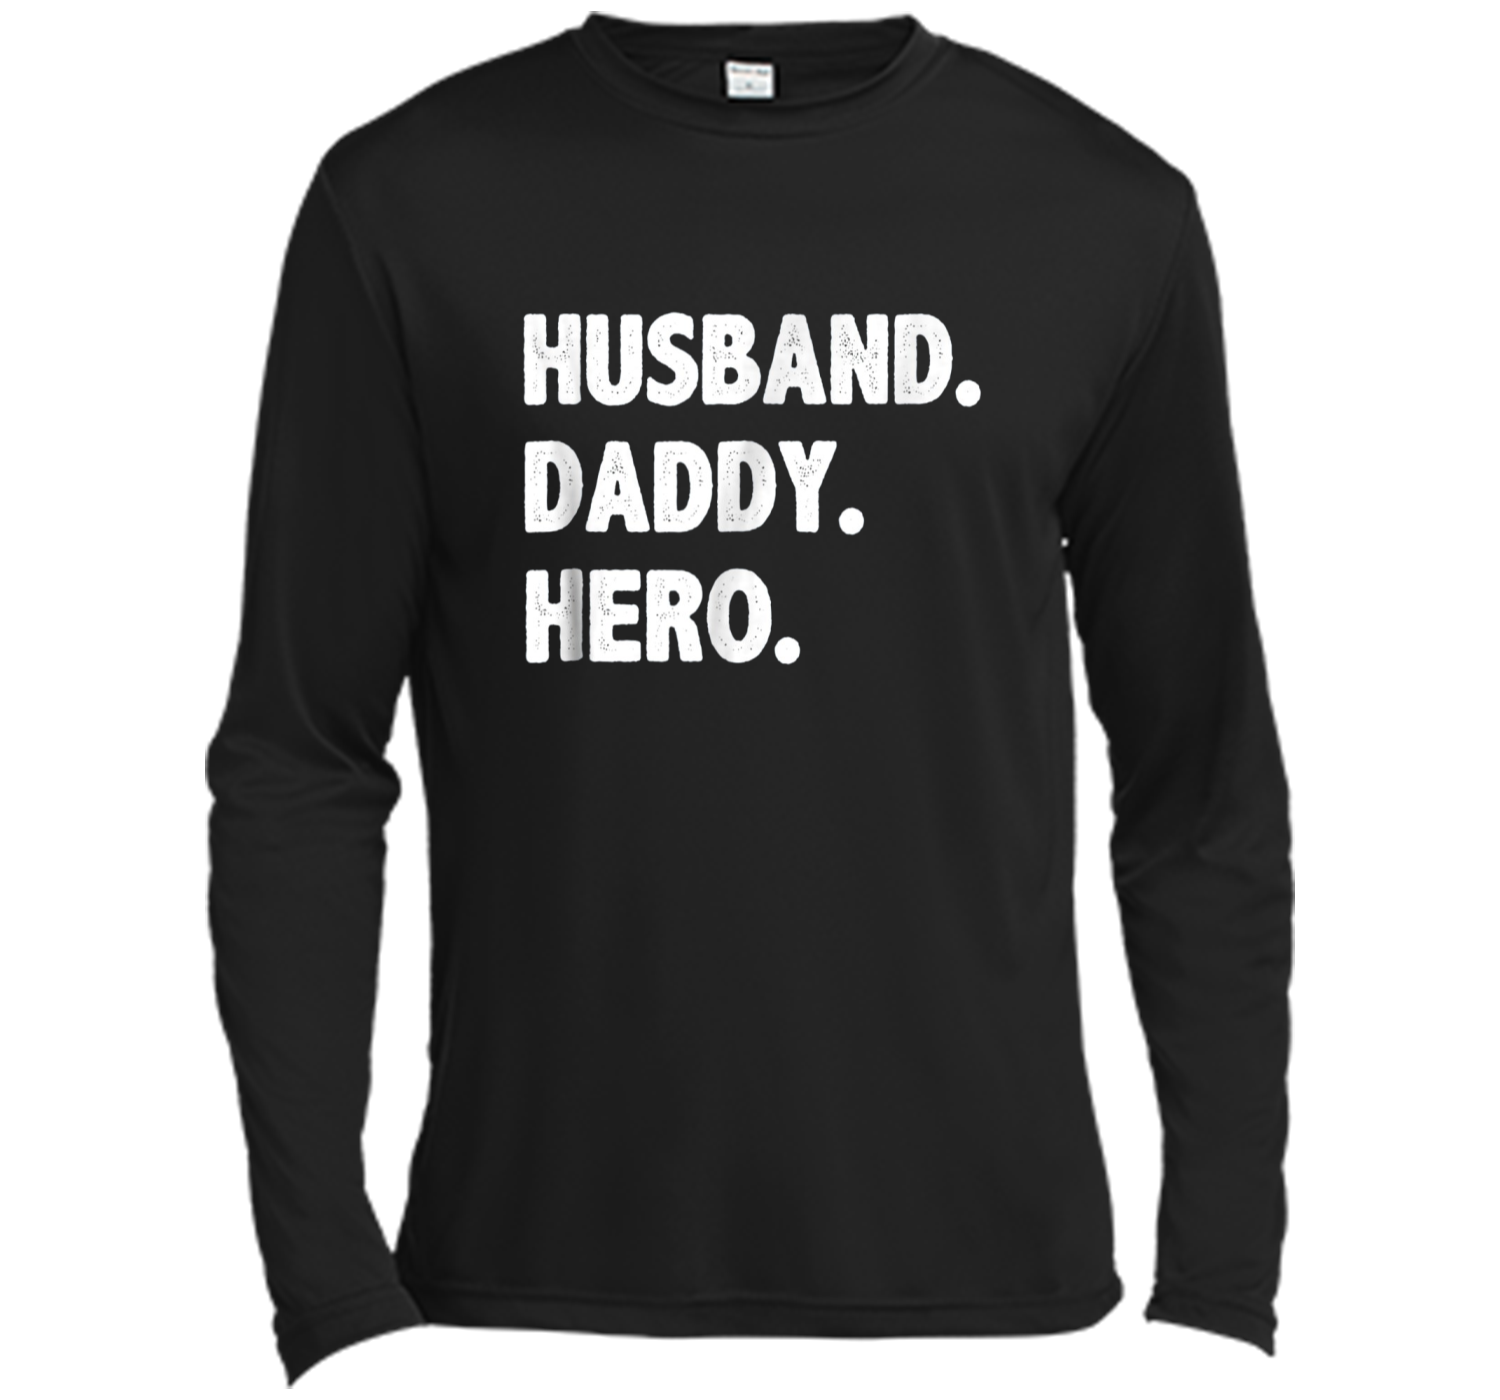 d8e87ae3 HUSBAND DADDY HERO Shirt Cute Funny Fathers Day Gift Long Sleeve ...